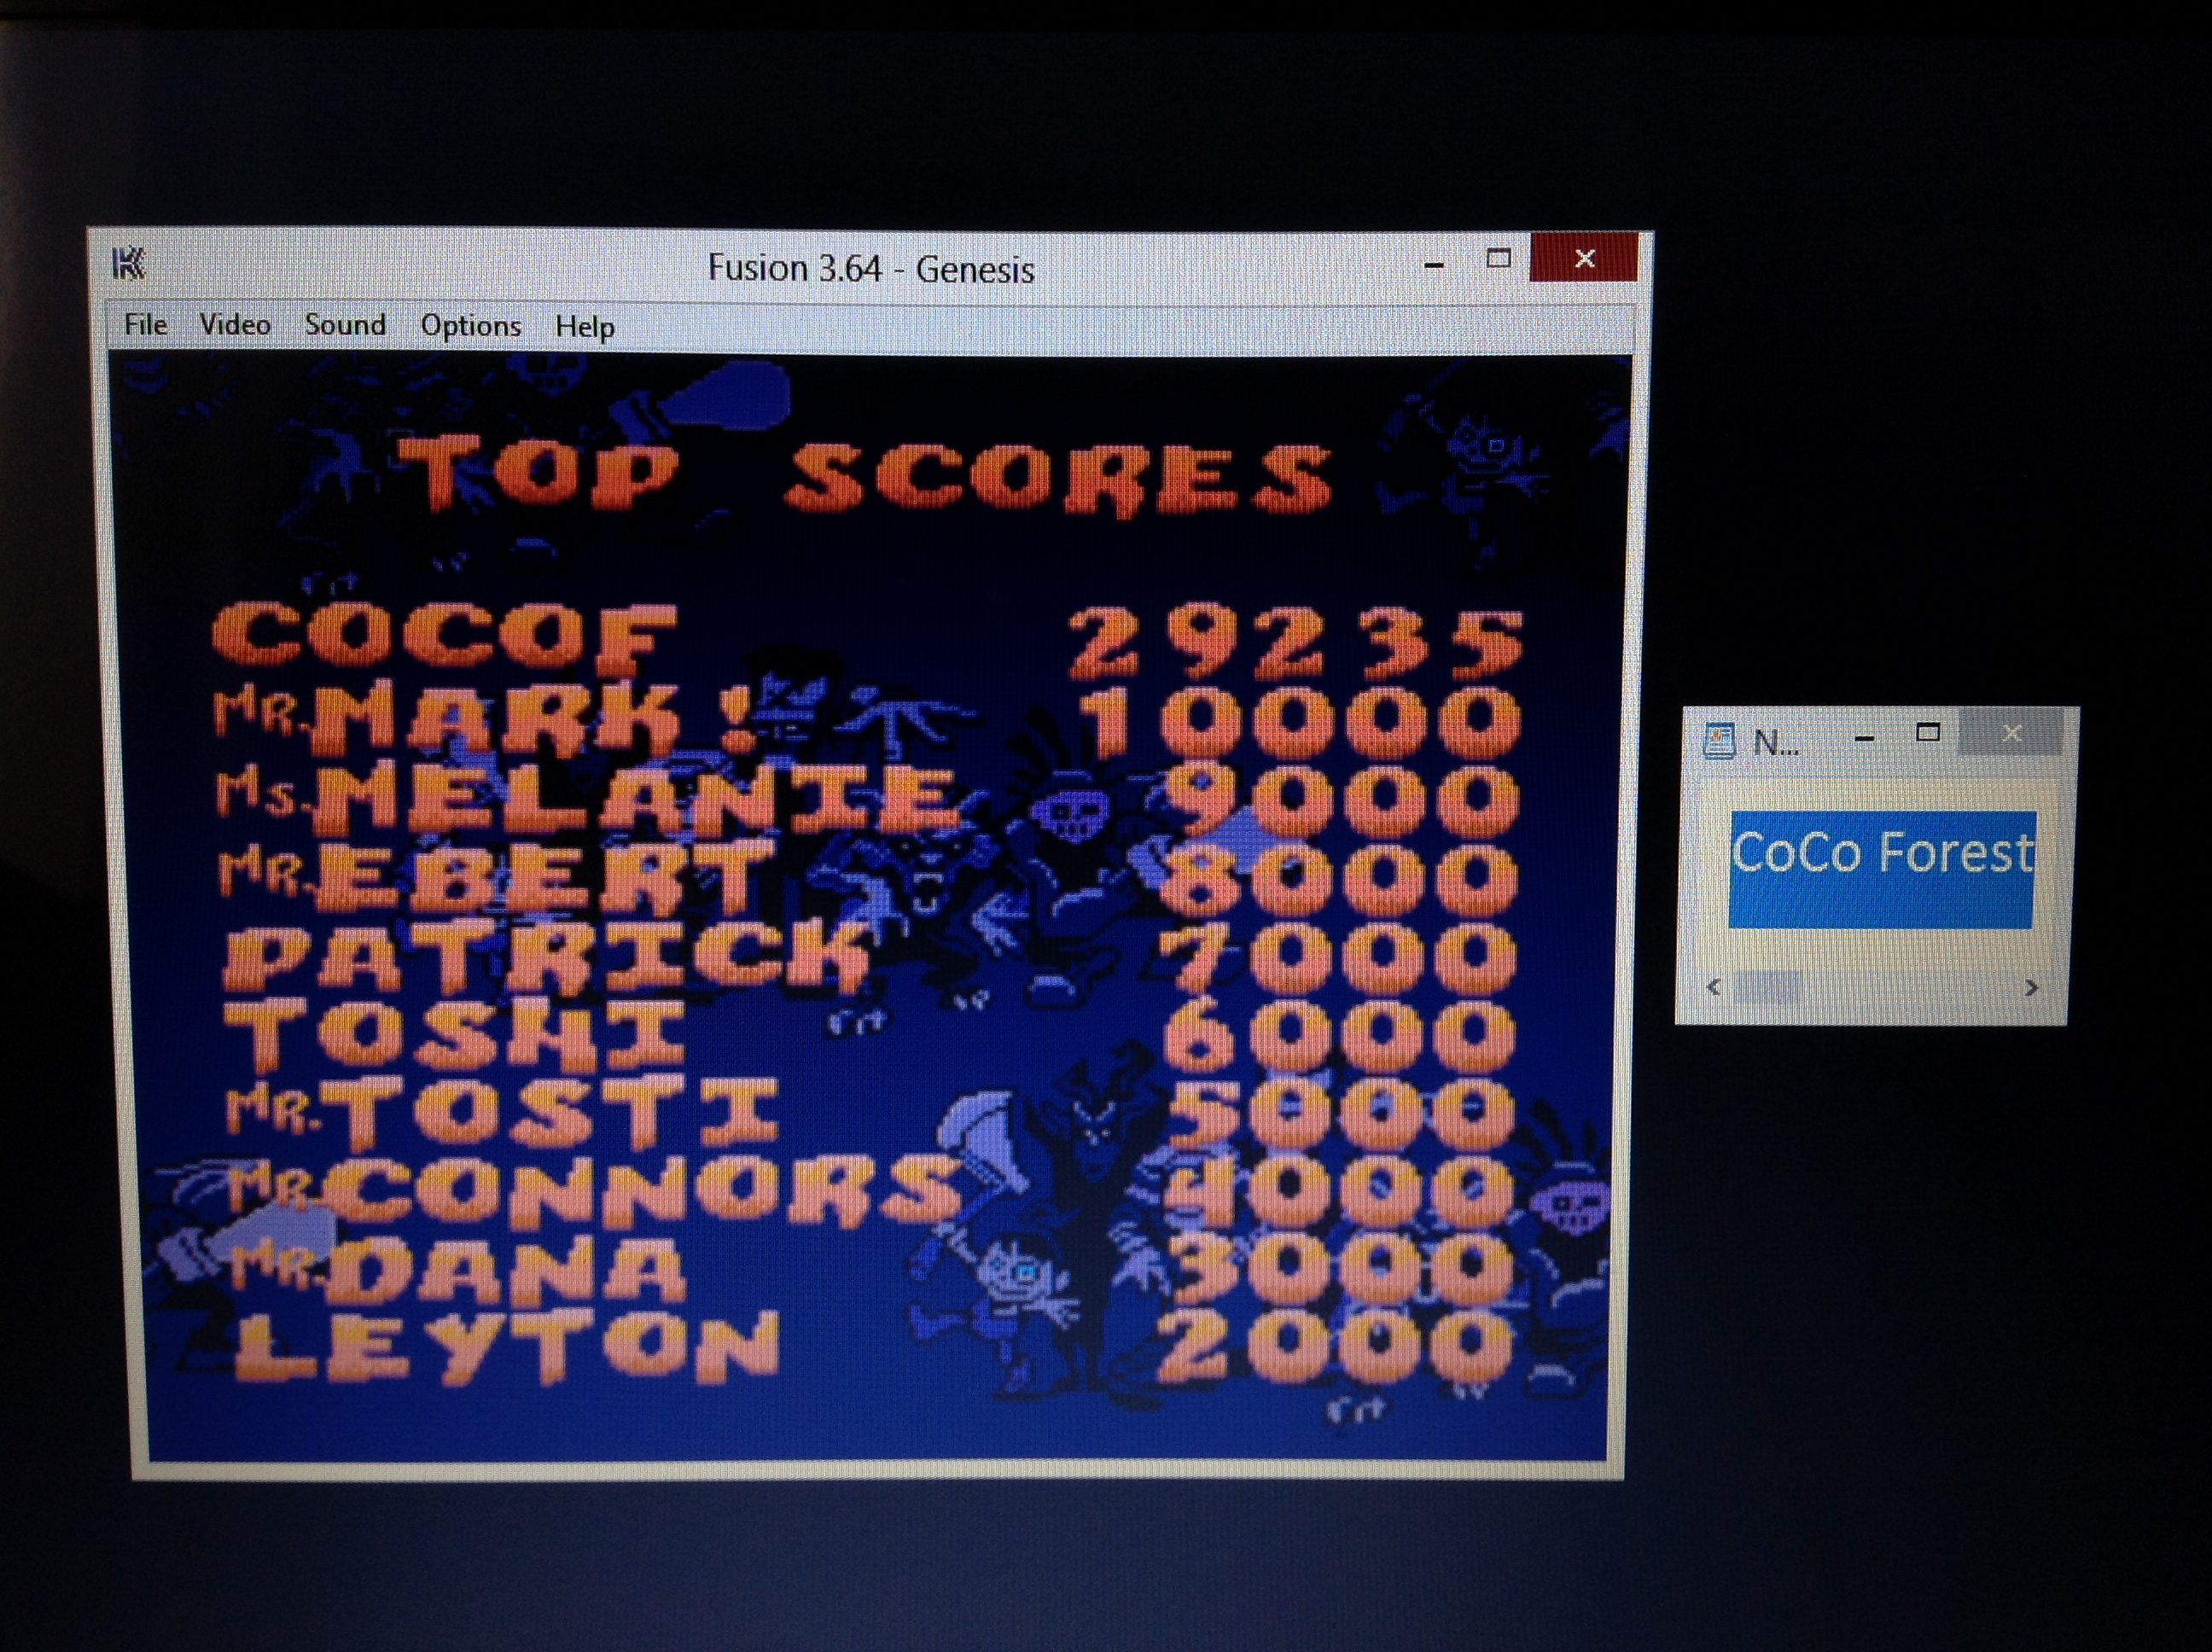 CoCoForest: Zombies Ate My Neighbors (Sega Genesis / MegaDrive Emulated) 29,235 points on 2019-04-16 09:17:38